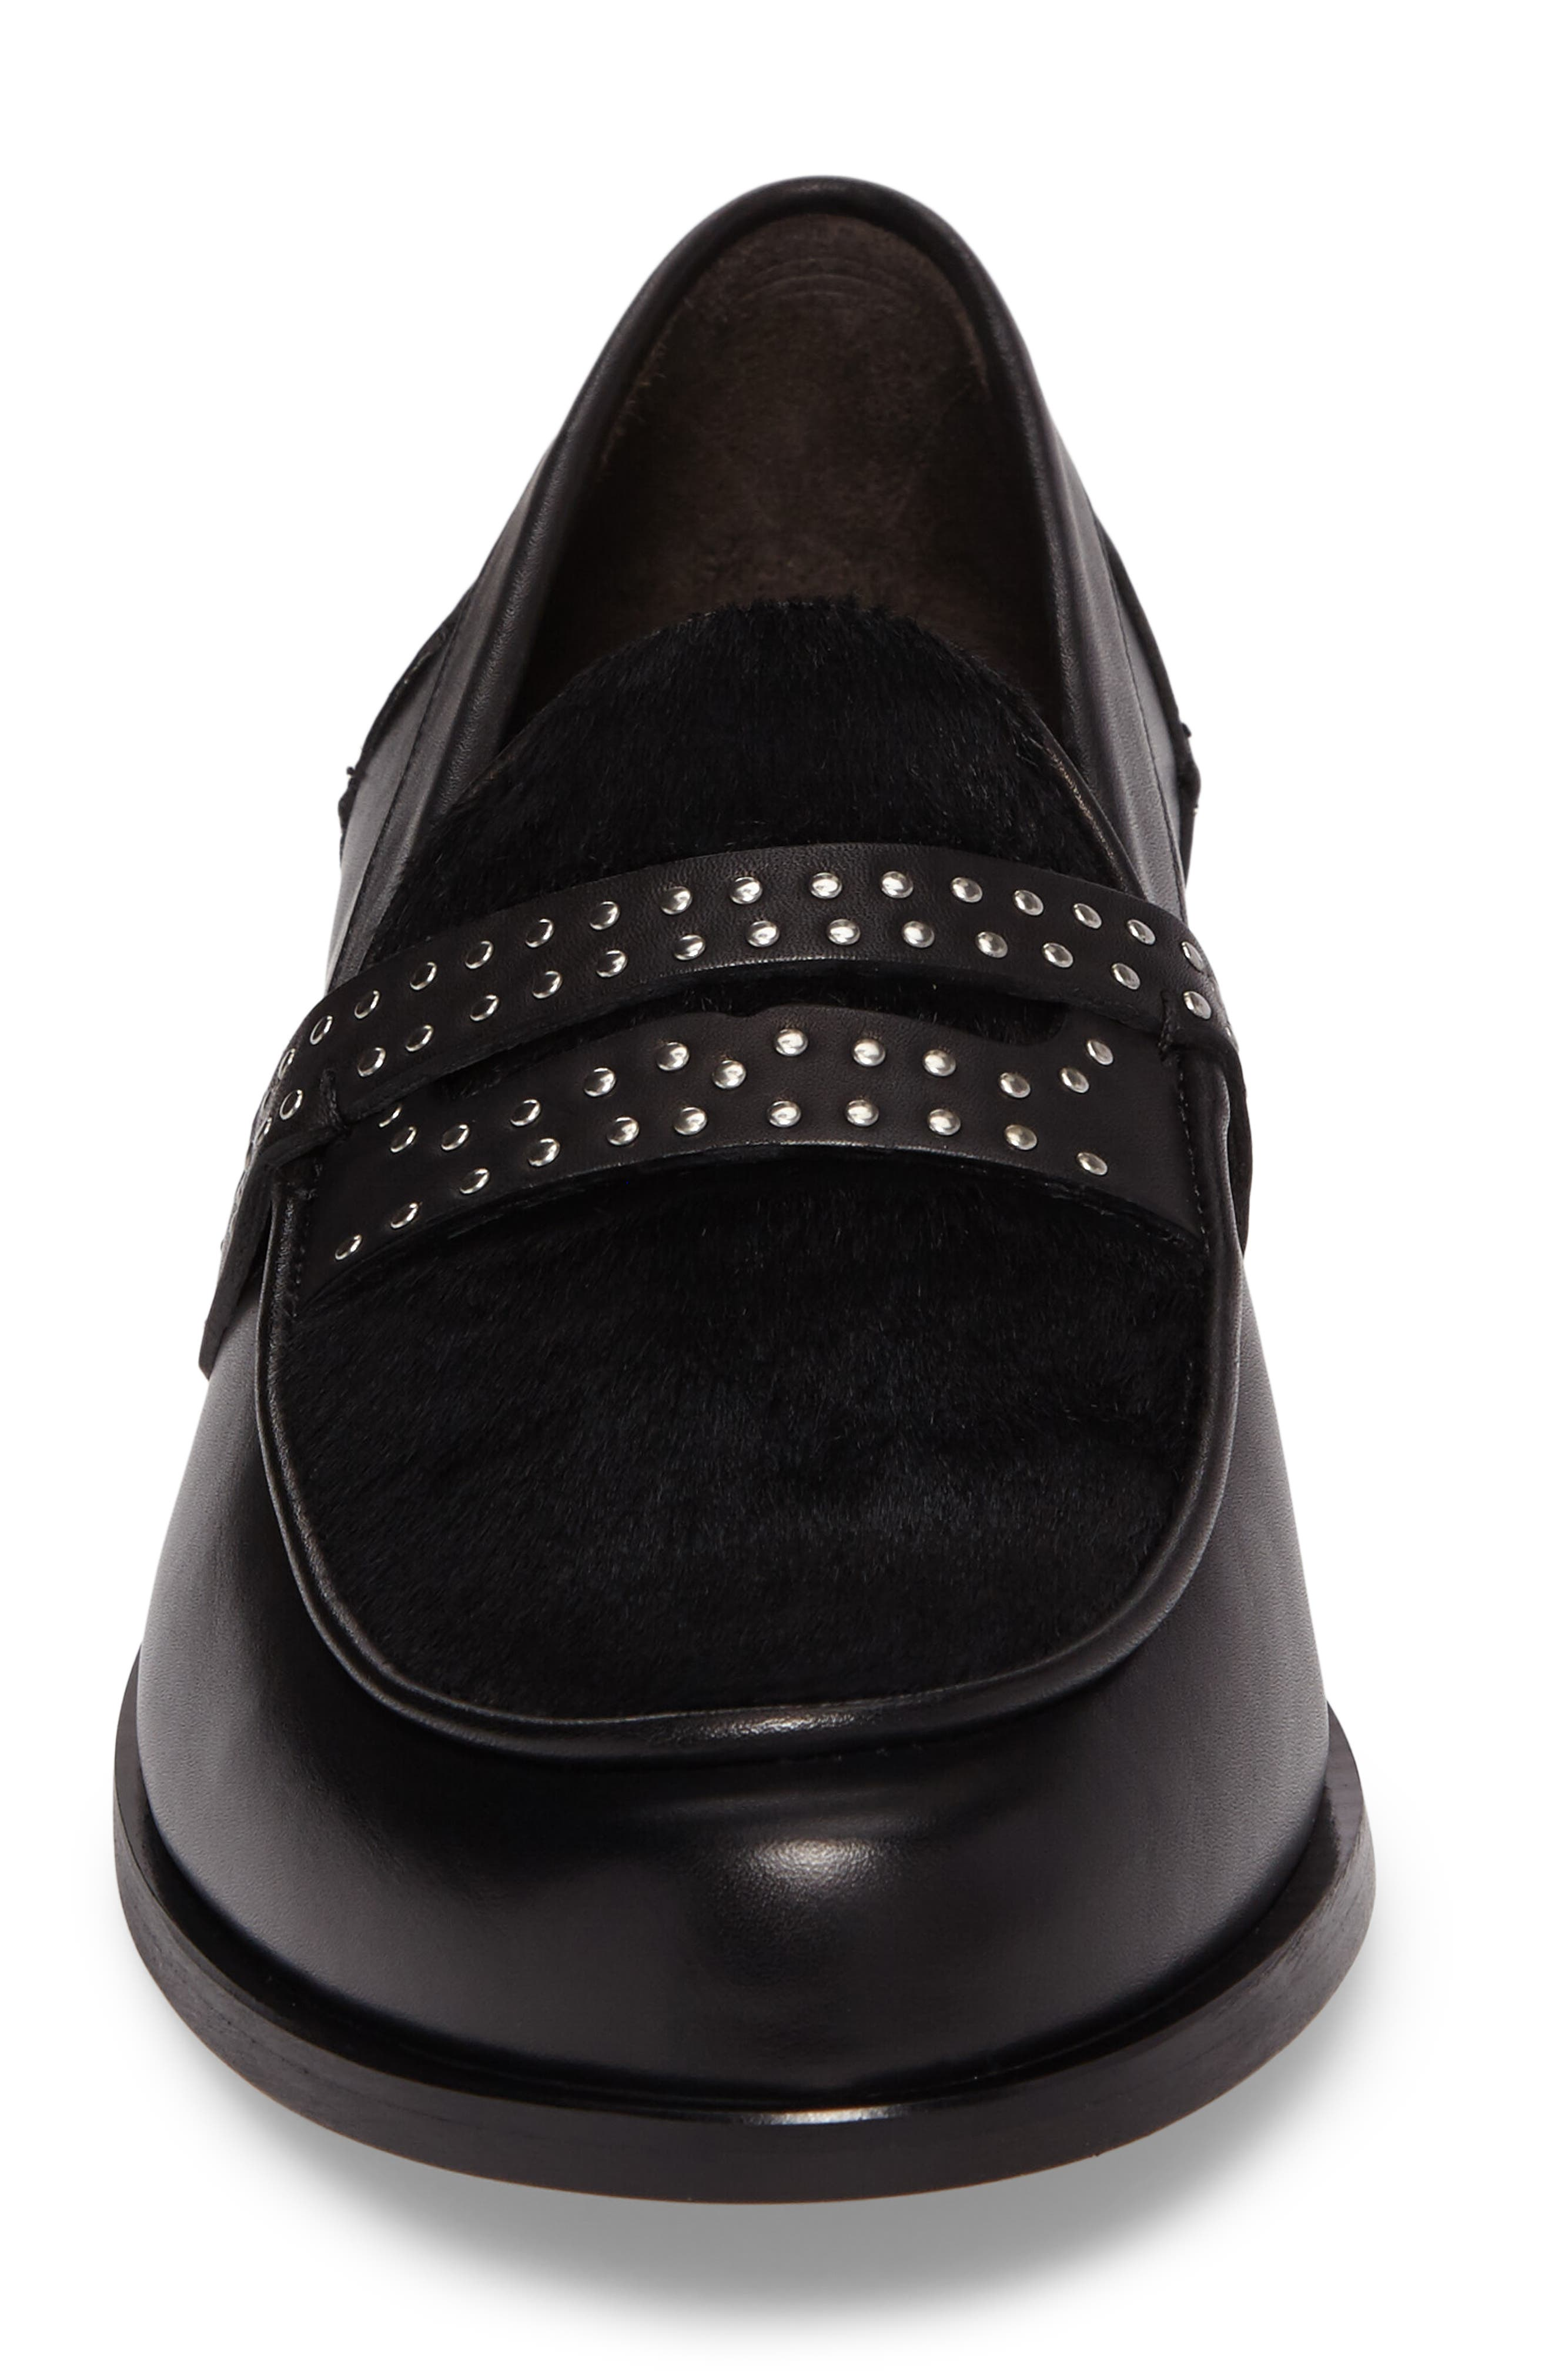 Sawyer Penny Loafer,                             Alternate thumbnail 4, color,                             001